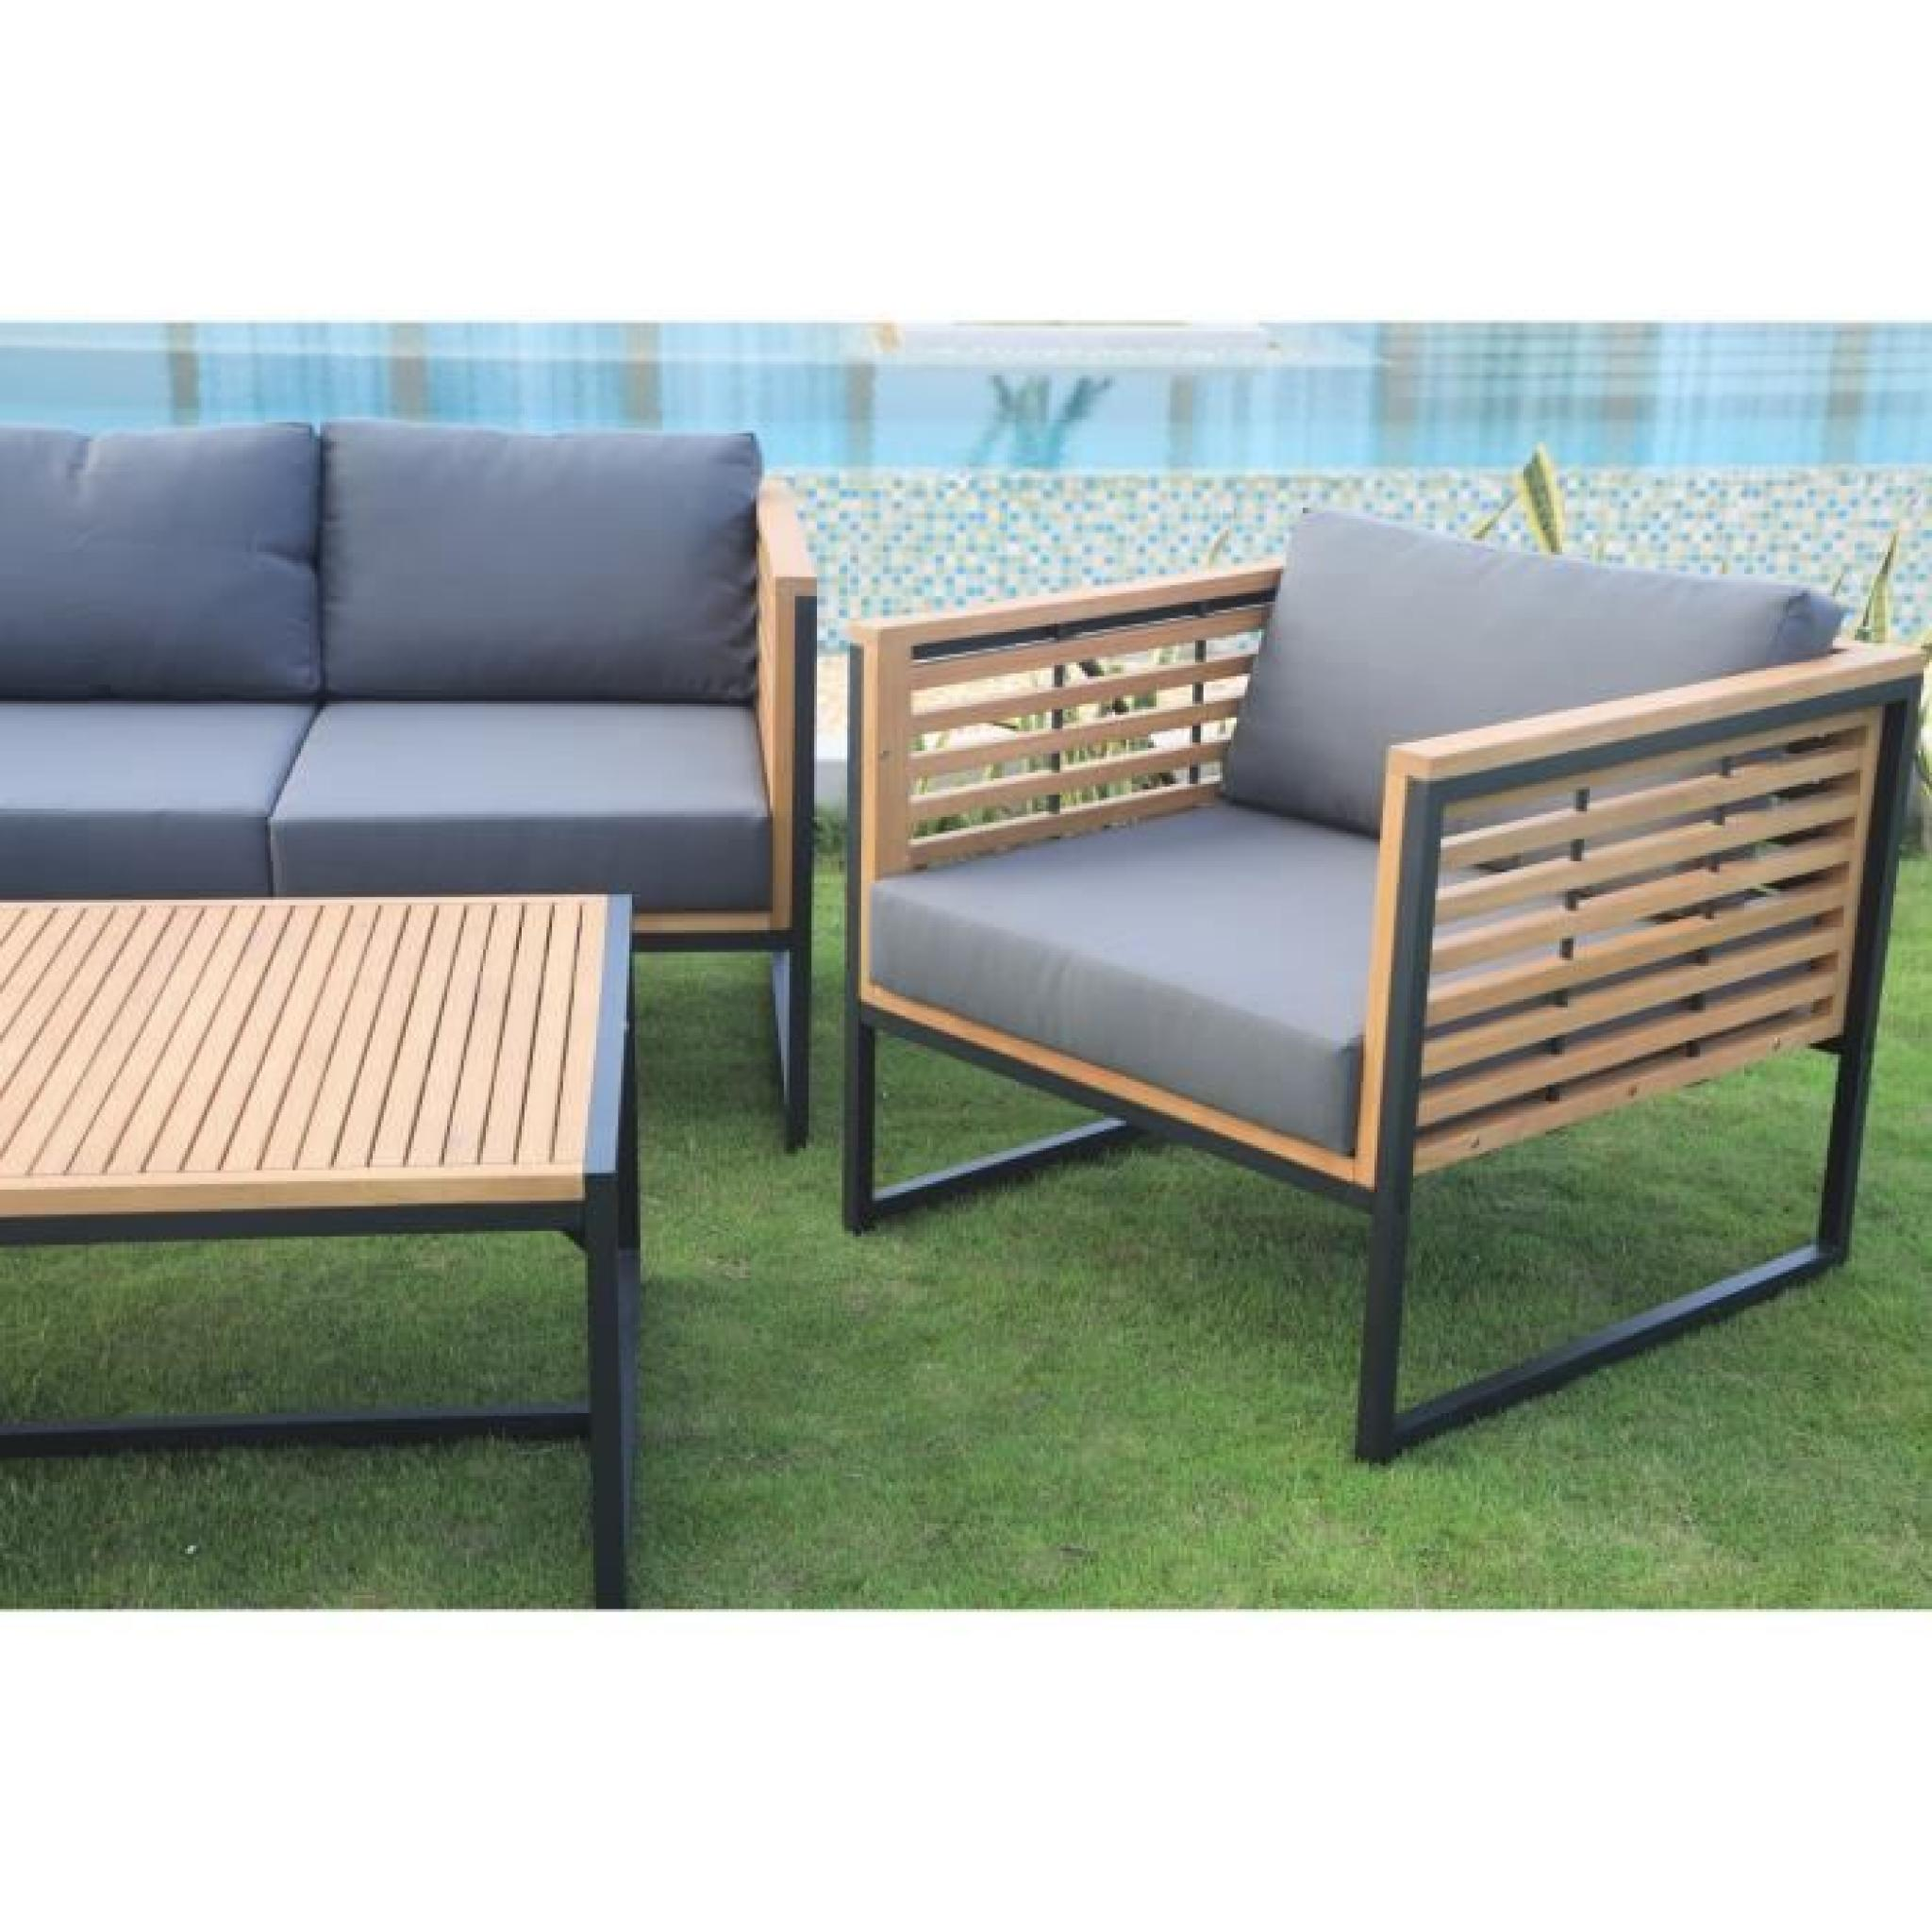 salon de jardin 5 places en eucalyptus fsc et aluminium. Black Bedroom Furniture Sets. Home Design Ideas